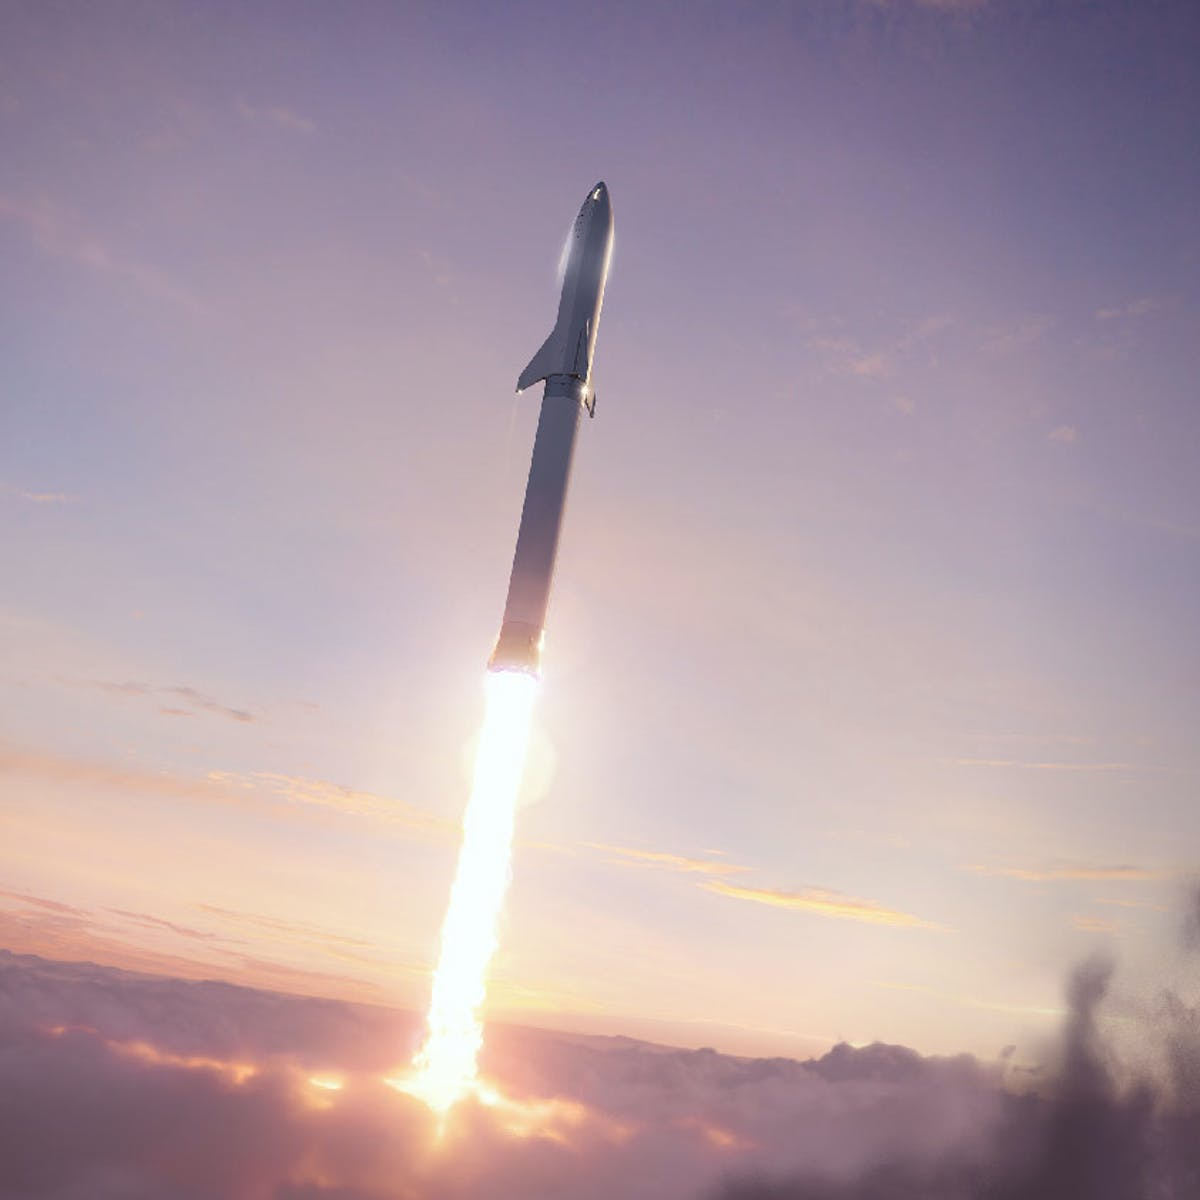 SpaceX Starship: How Tesla batteries are helping to fly Elon Musk's rocket